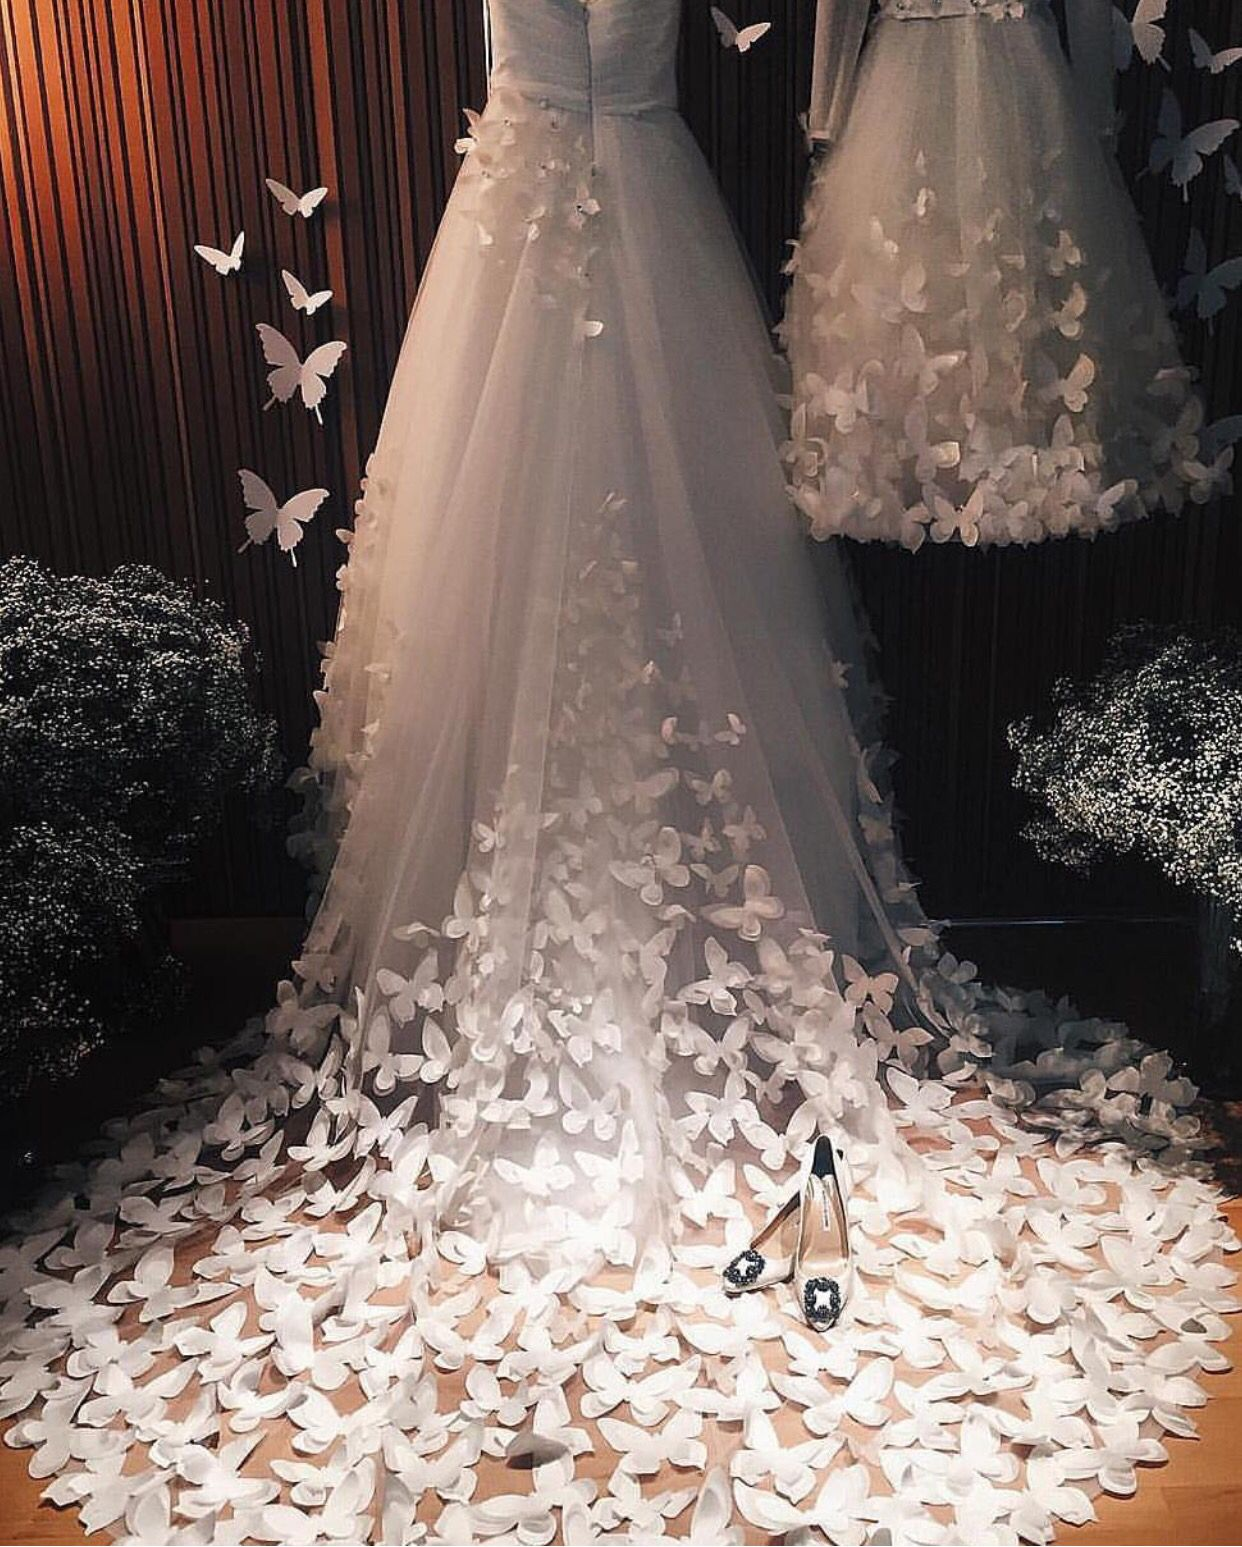 What A Stunning Gown With 3d Butterfly Embellishments By Speranzacouture: Erfly Embroidered Wedding Dress At Reisefeber.org